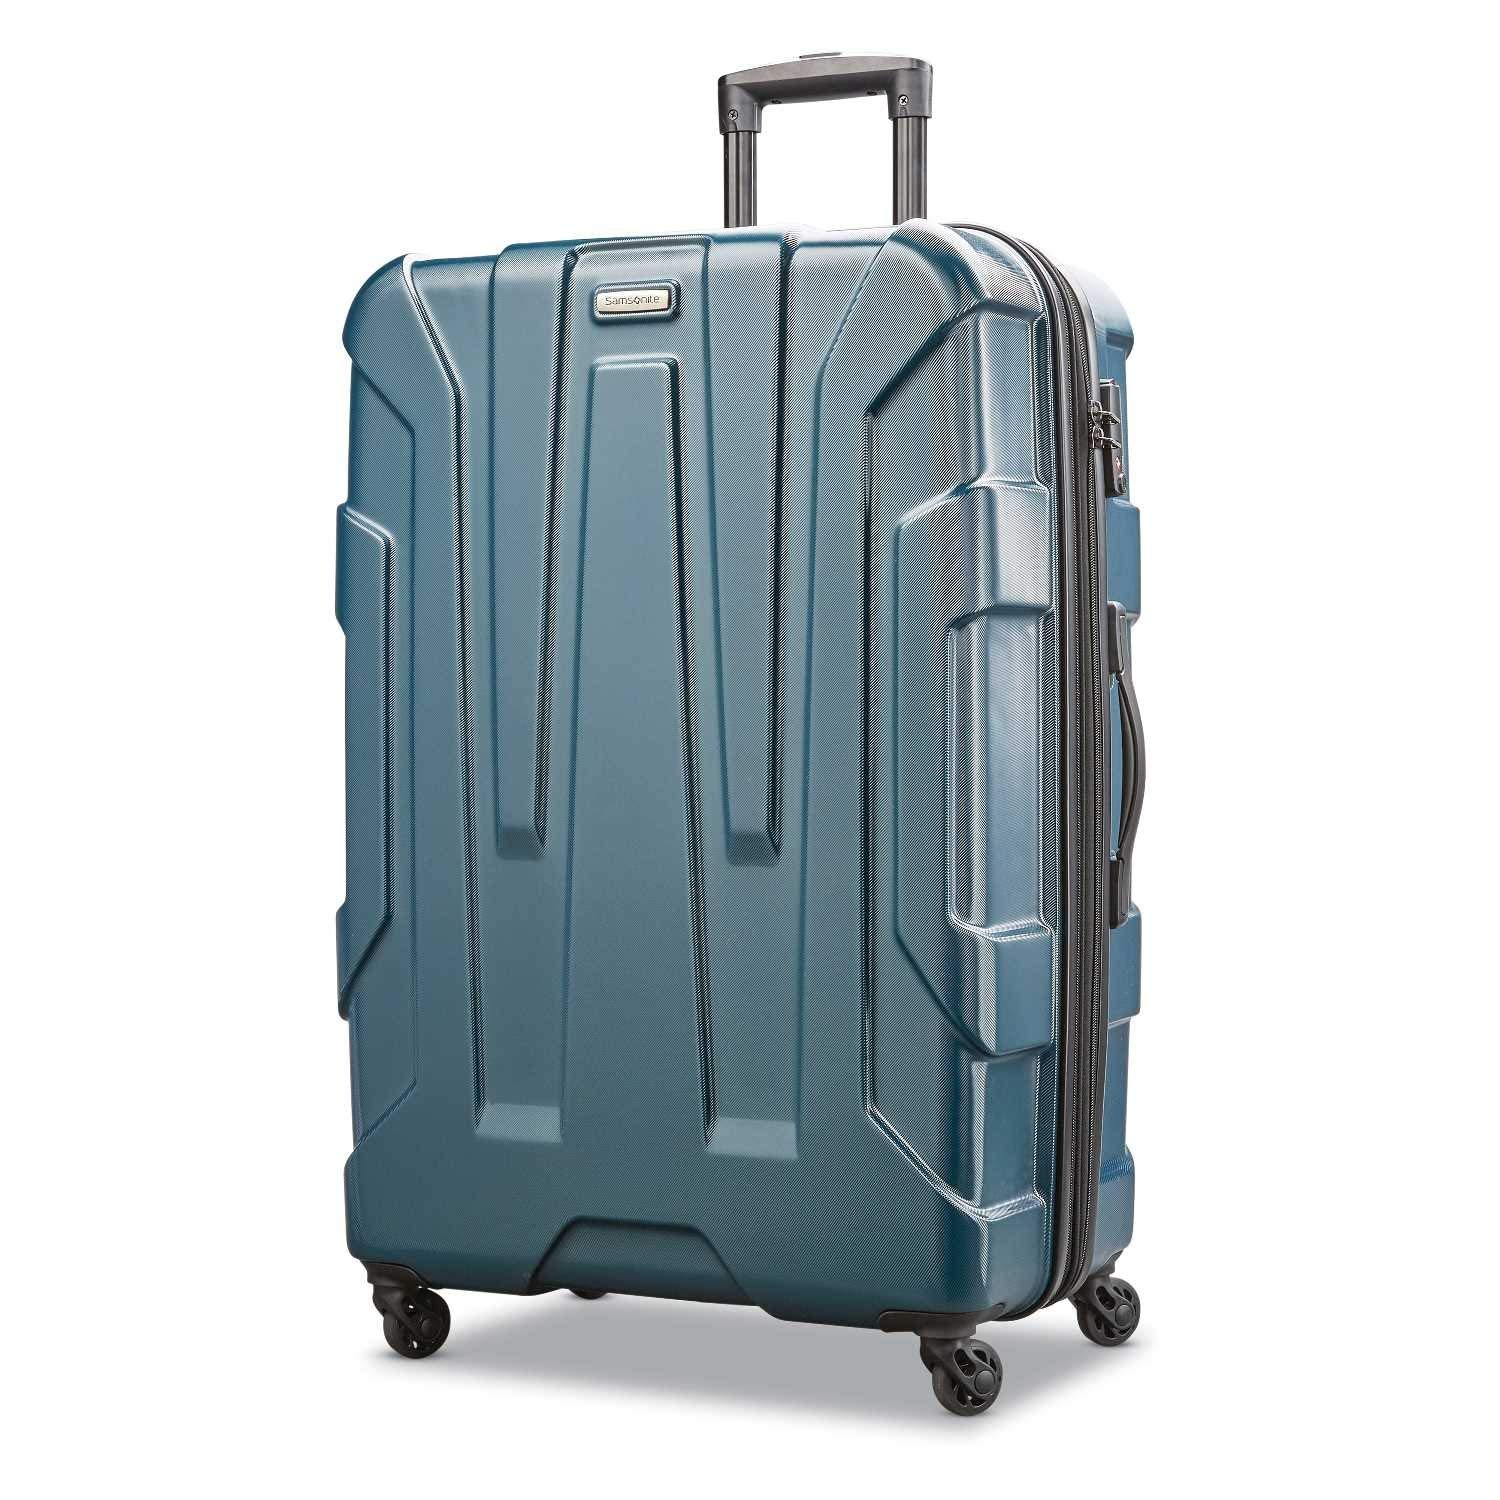 5 Best Samsonite Luggage Labor Day Deals and Sales 2018